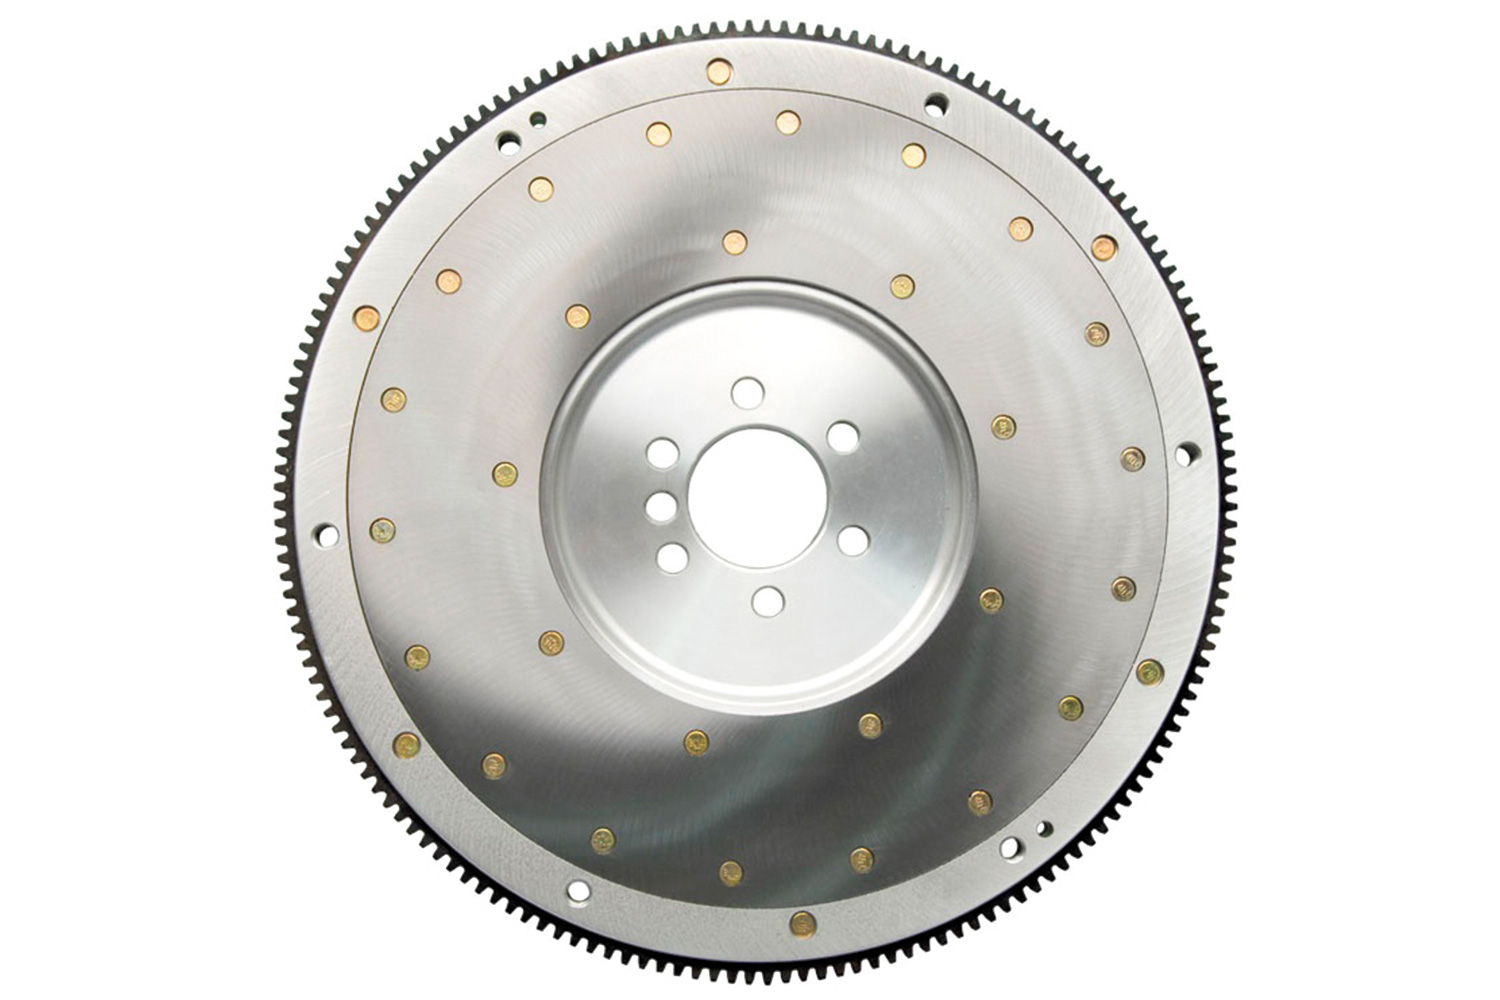 [12] Think of flywheels like brake rotors and that they do wear over time or during heavy abuse. The flywheel material will have an effect on performance because of the weight to move the flywheel.